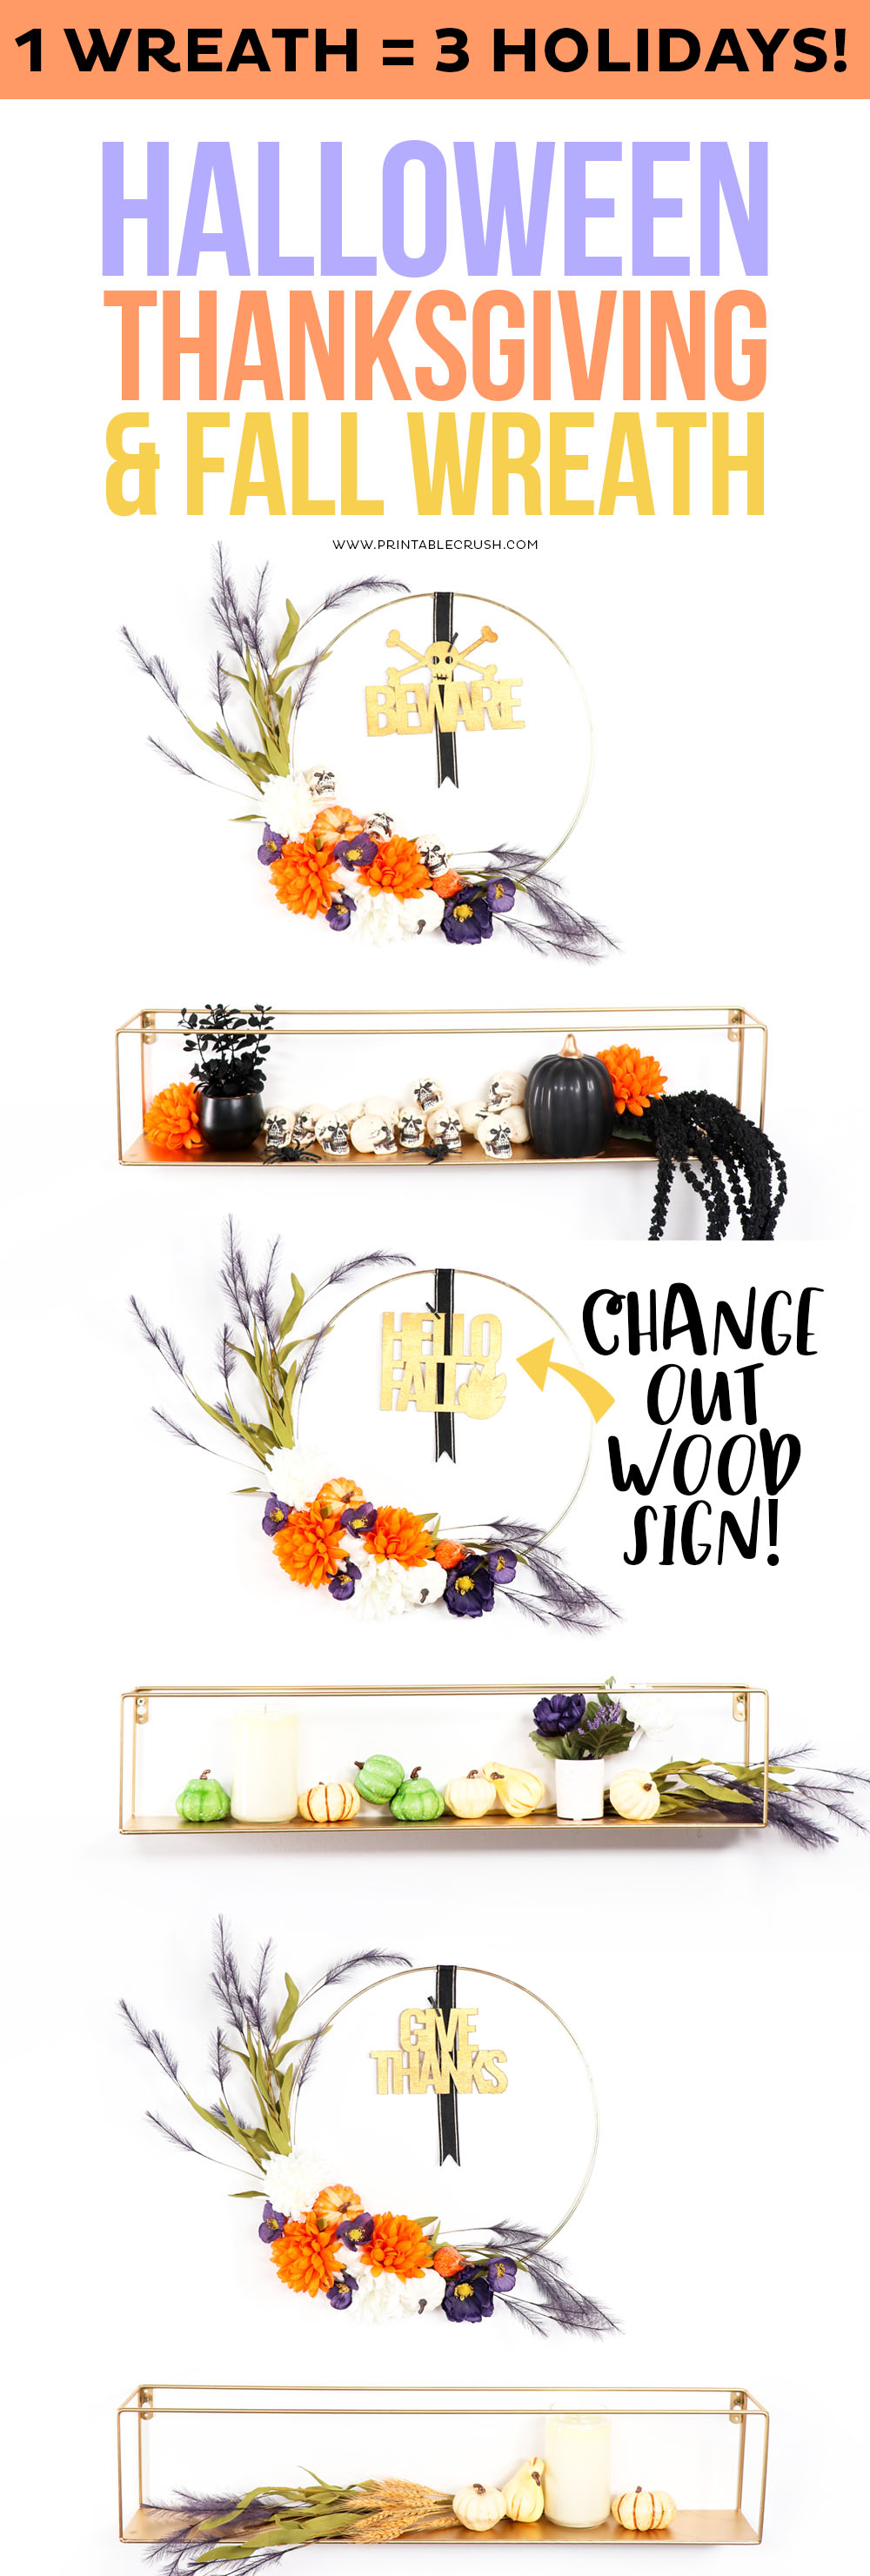 3 in 1 DIY Wreath - Fall Thanksgiving and Halloween Wreath